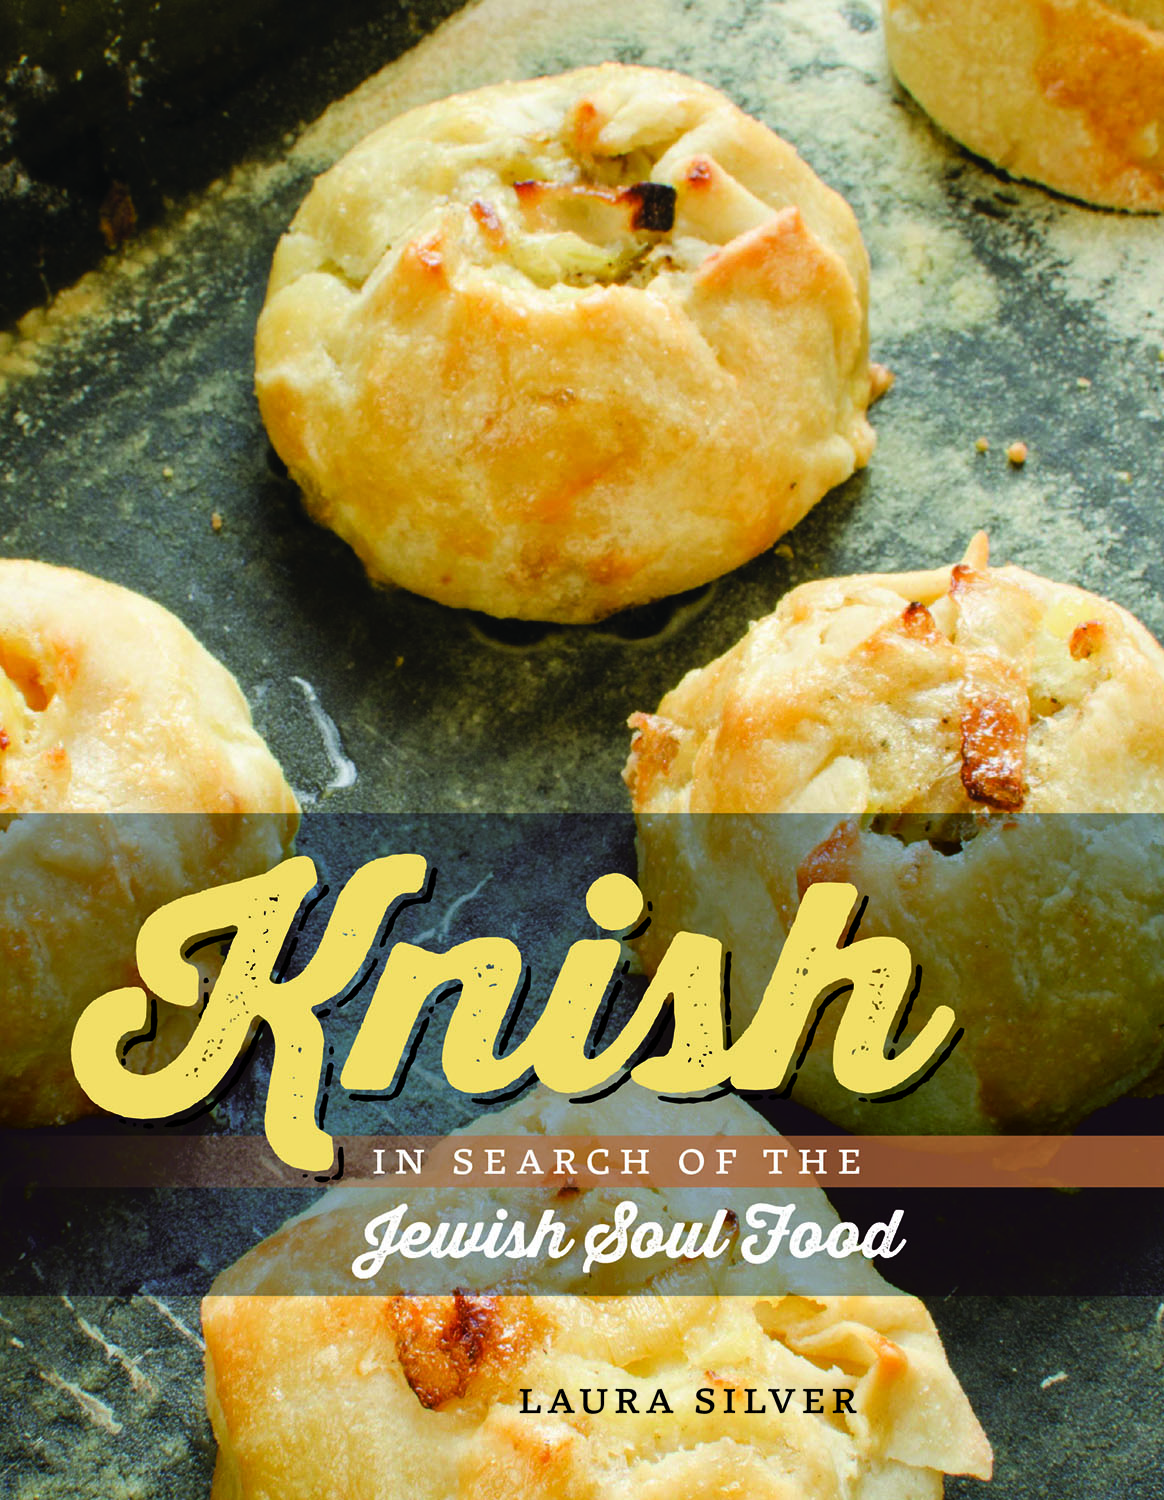 Discussion & Tasting: Knish, In Search of the Jewish Soul Food by Laura Silver, co-sponsored by The Workmen's Circle